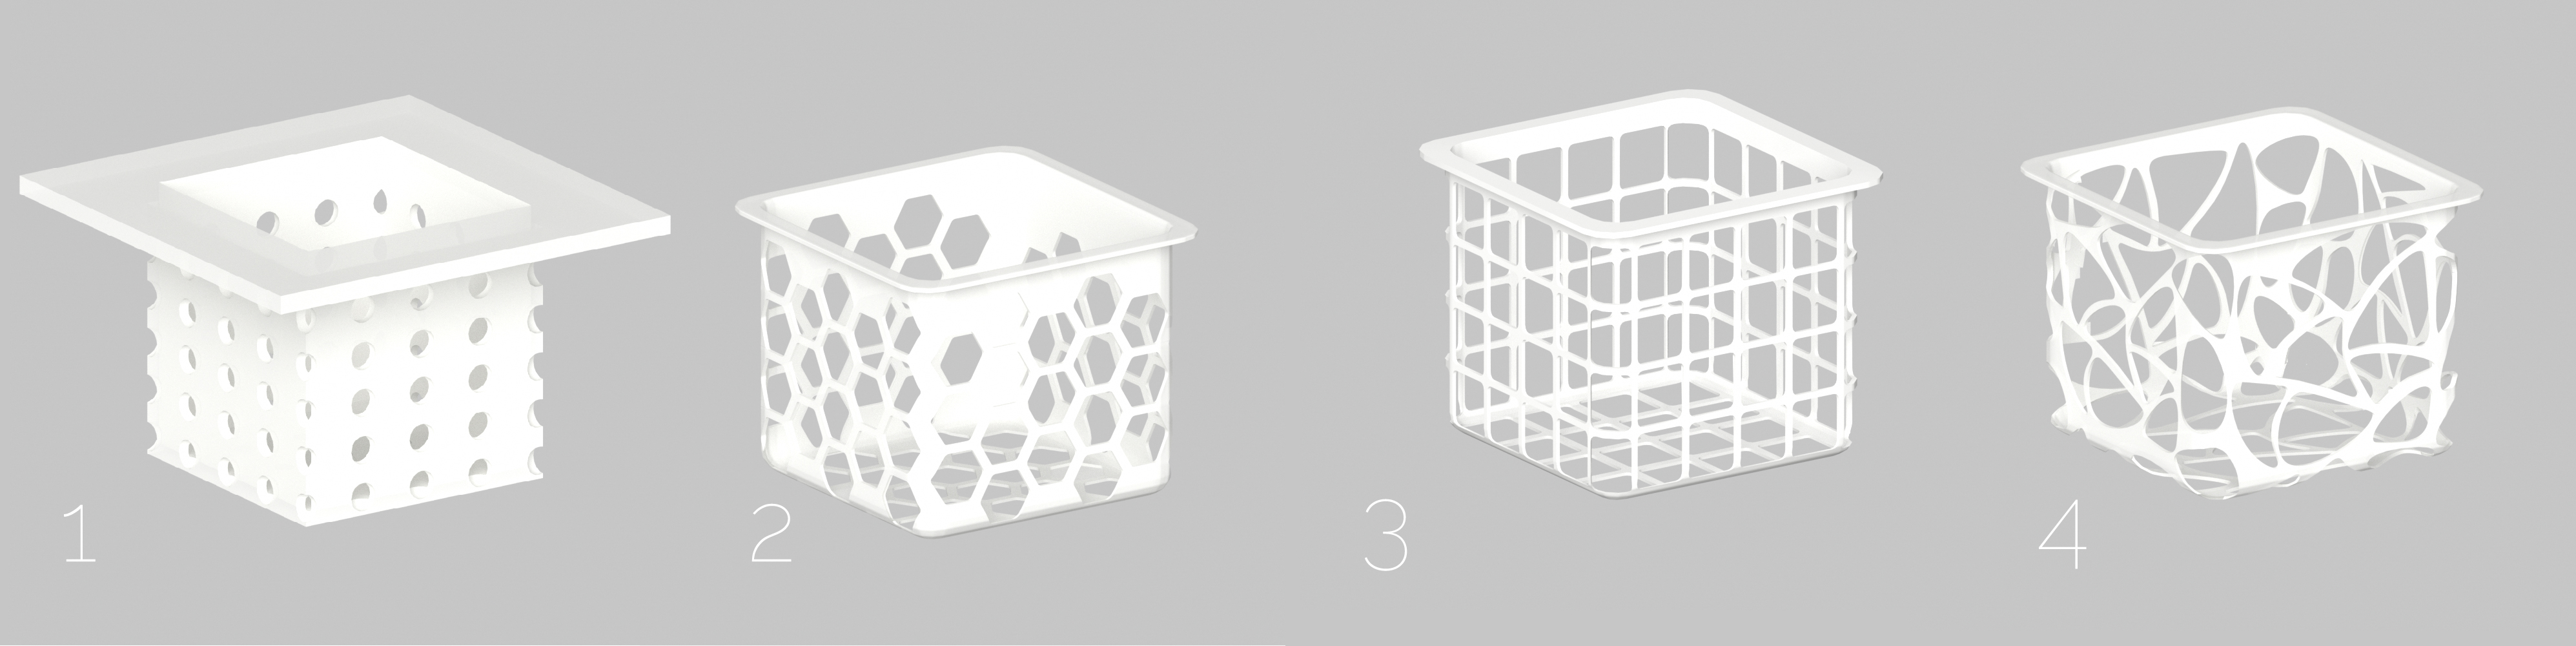 Iterated forms of net planters